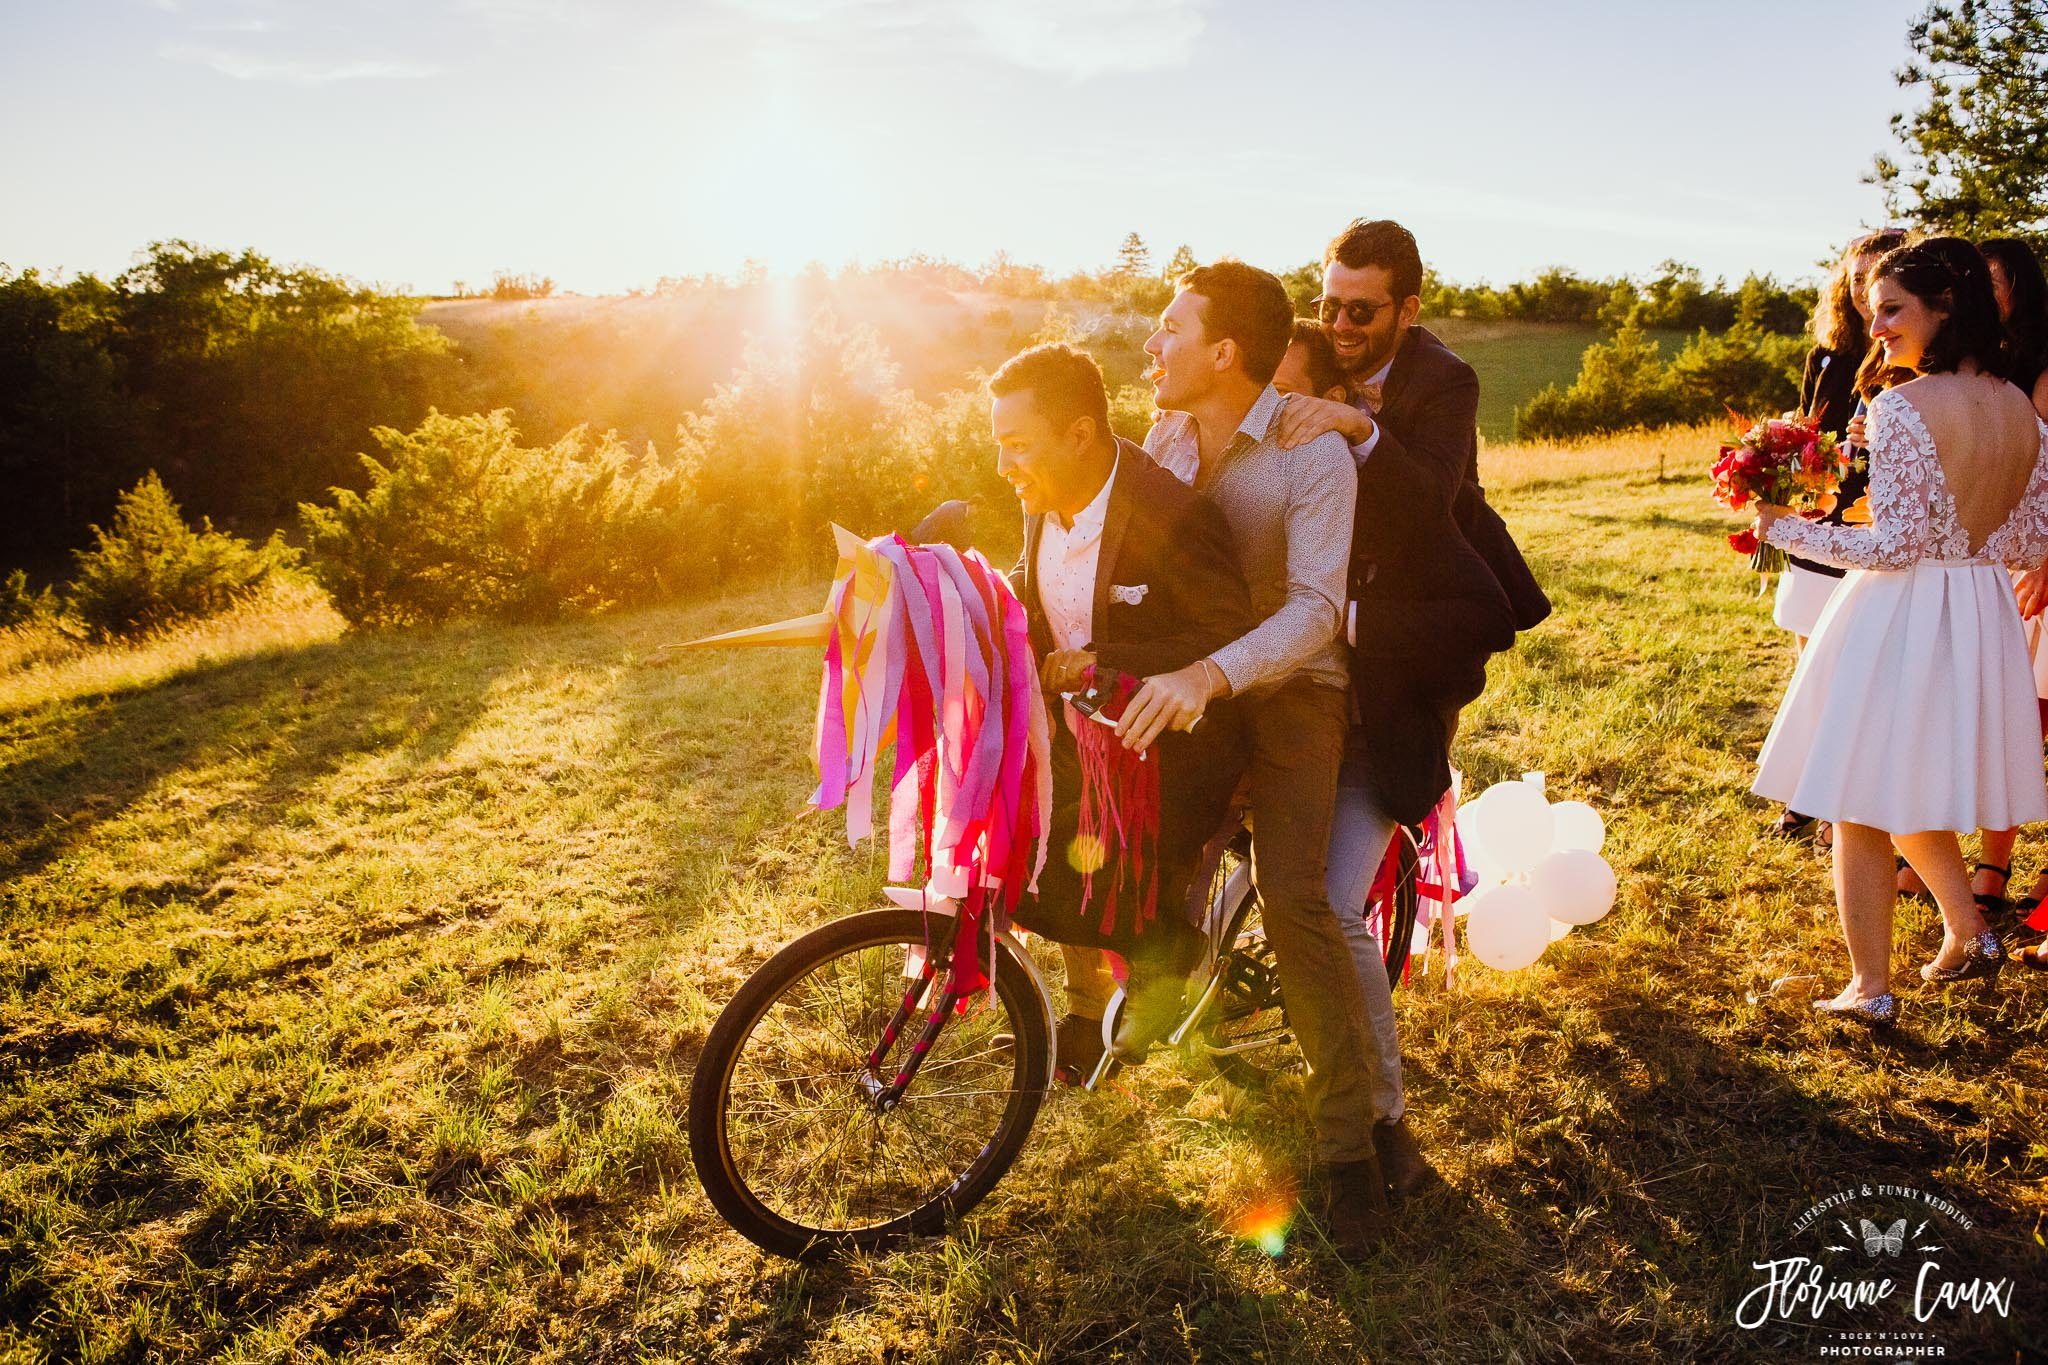 photos-de-groupes-originales-mariage-cahors-golden-hour-13